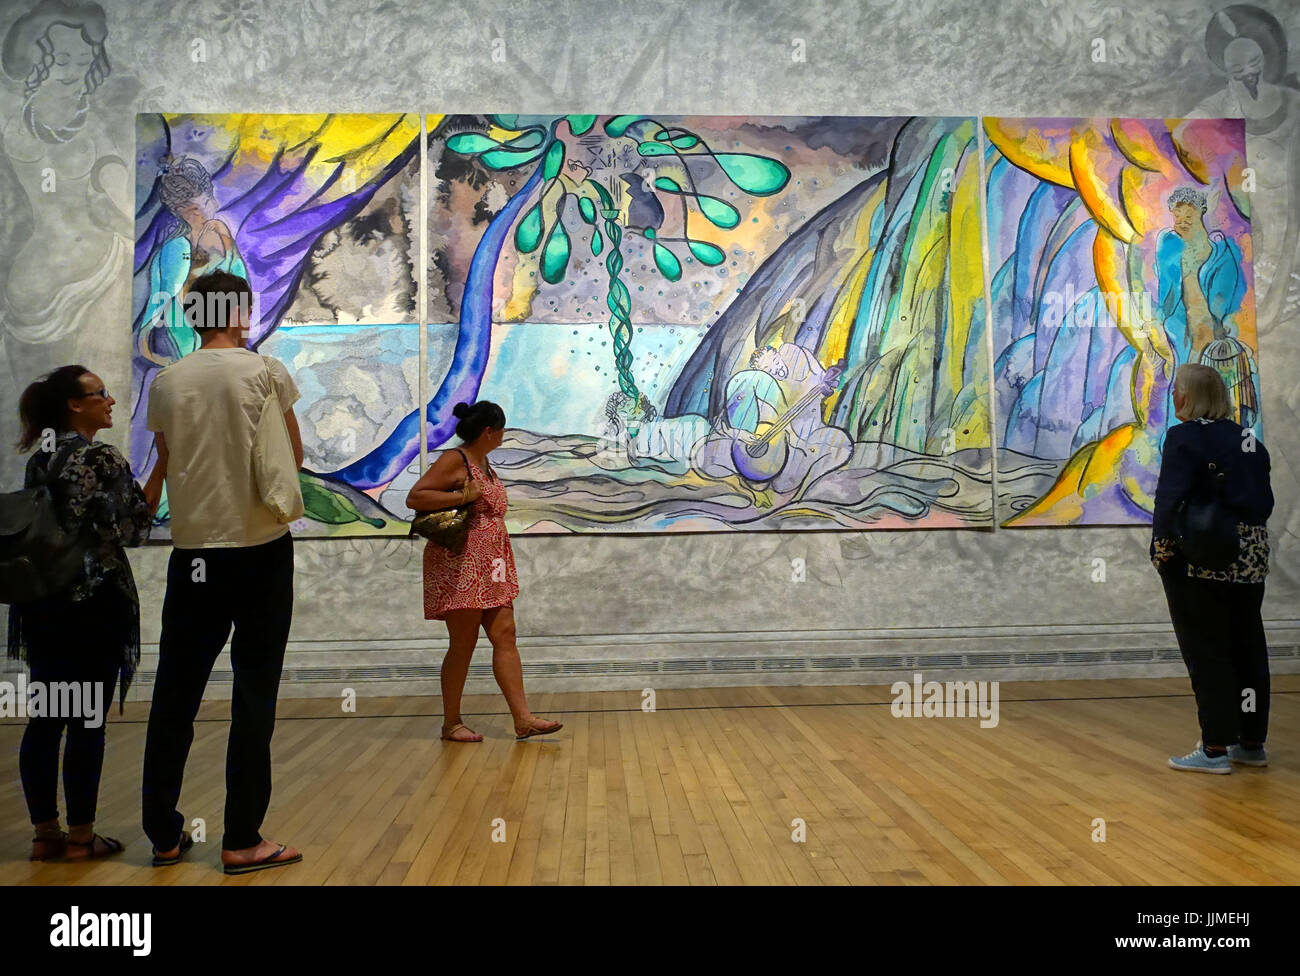 Tapestry 'The Caged Bird's Song' by Chris Ofili on show at the National Gallery, London - Stock Image